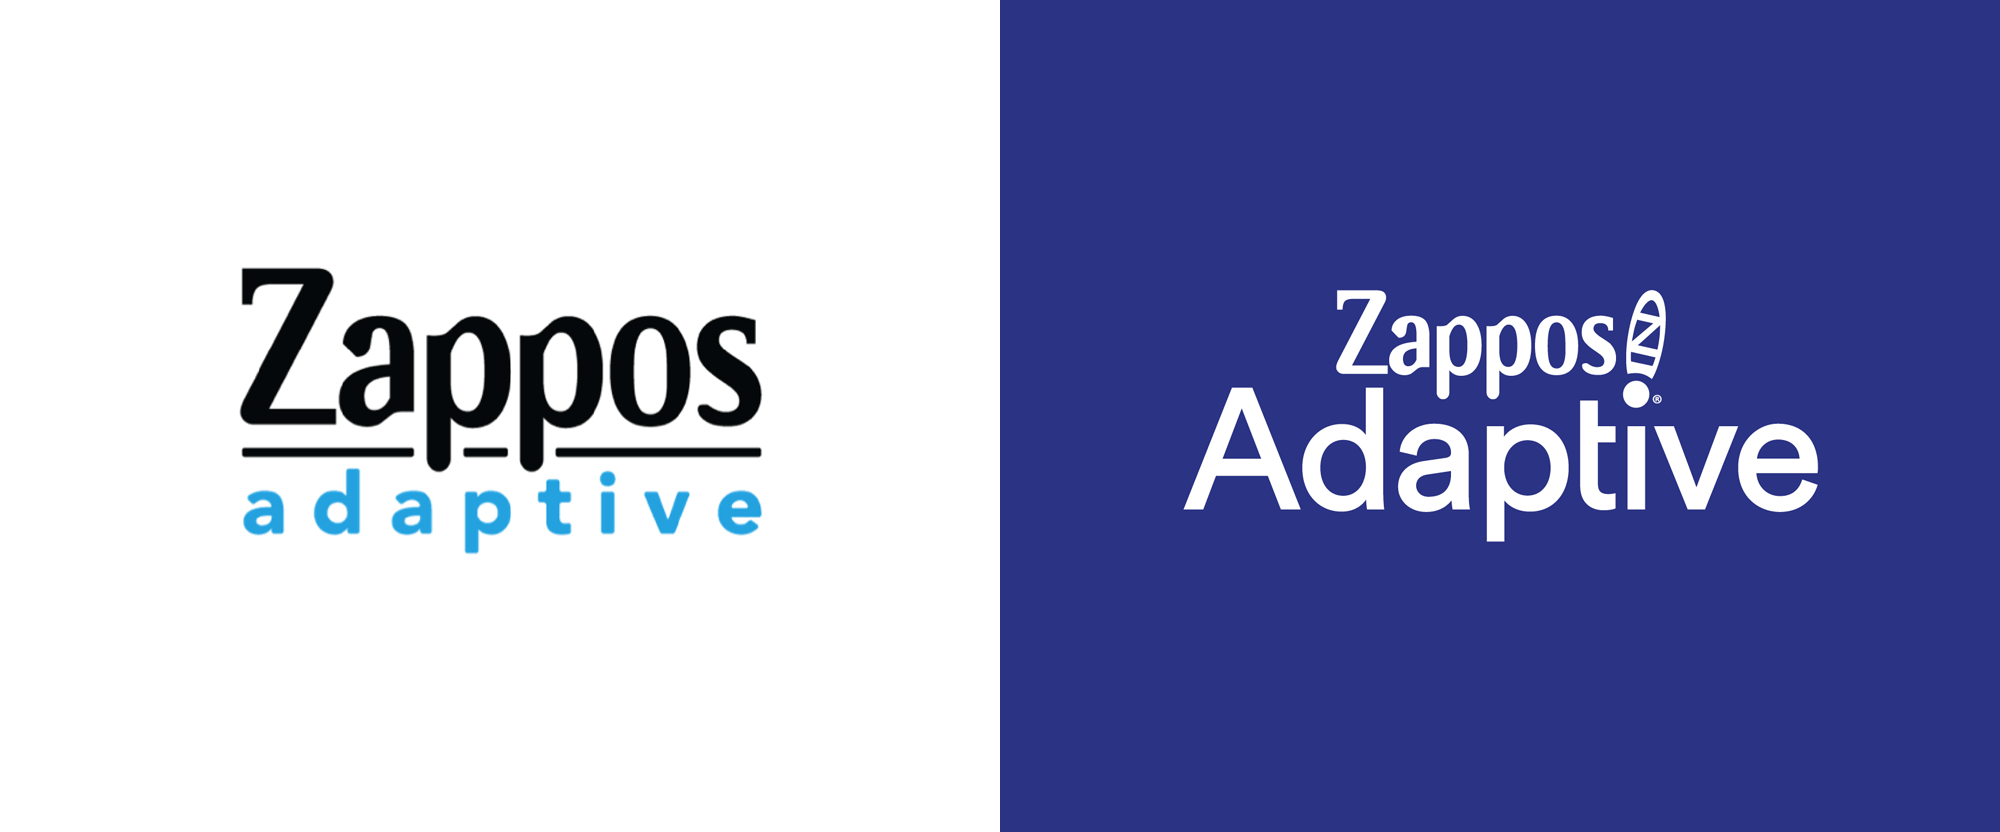 New Logo and Identity for Zappos Adaptive by Eric&Todd